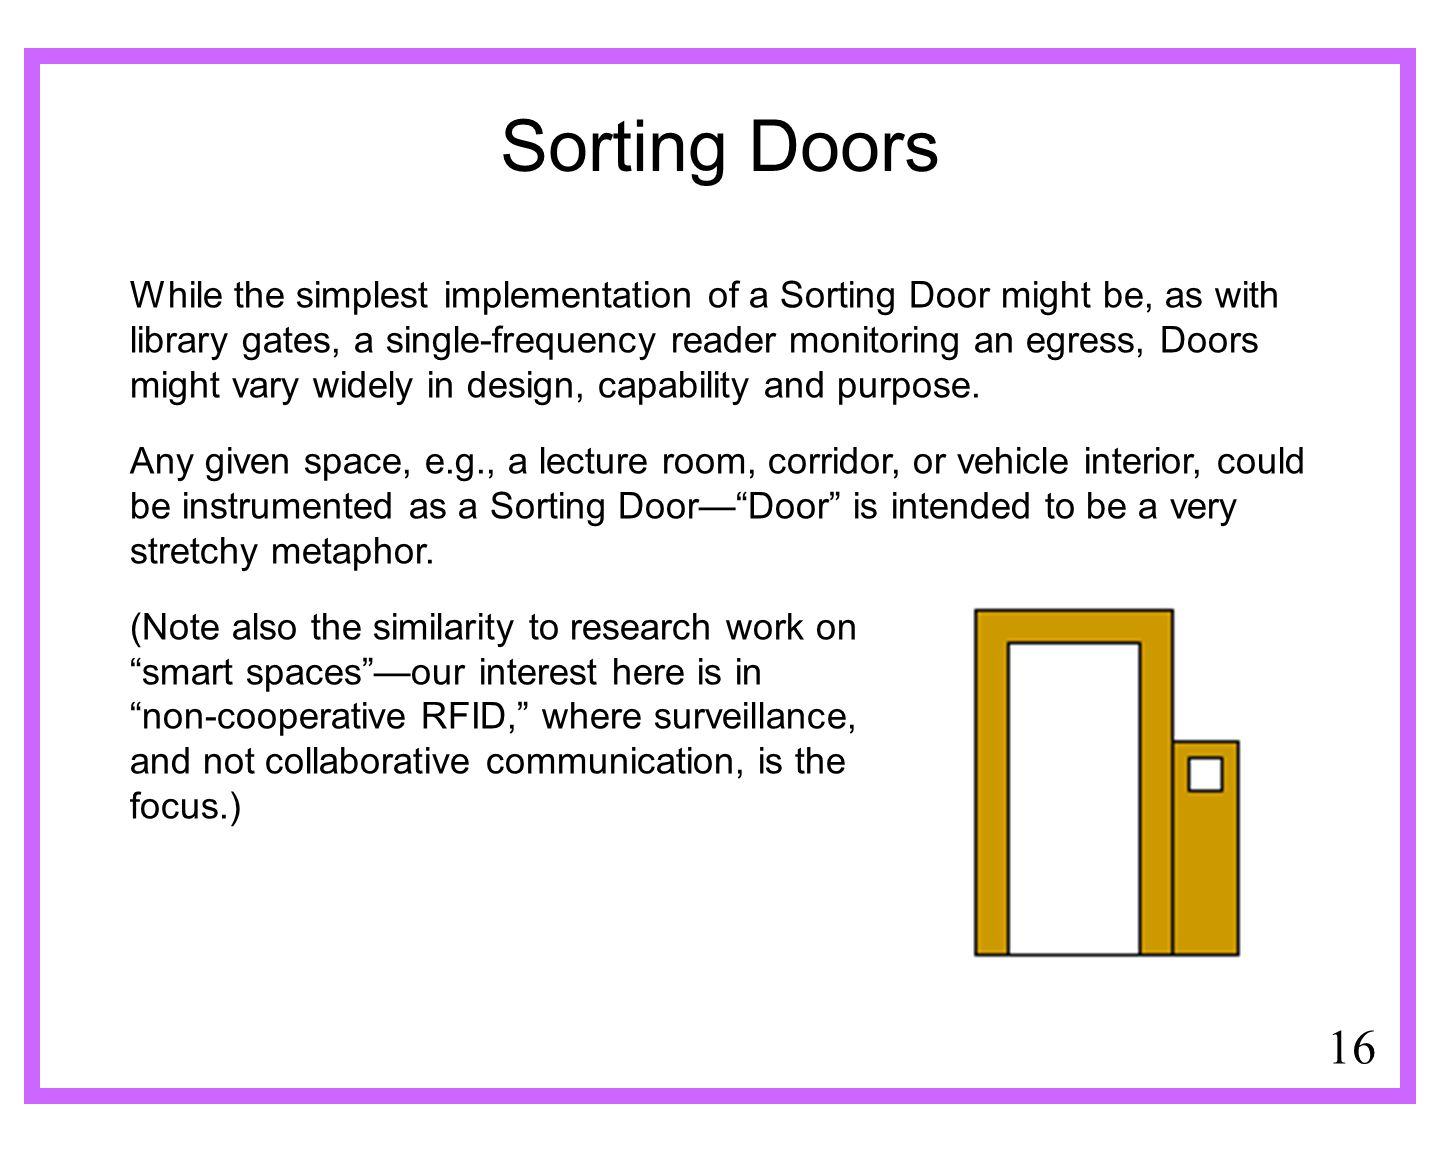 16 Sorting Doors While the simplest implementation of a Sorting Door might be, as with library gates, a single-frequency reader monitoring an egress, Doors might vary widely in design, capability and purpose.